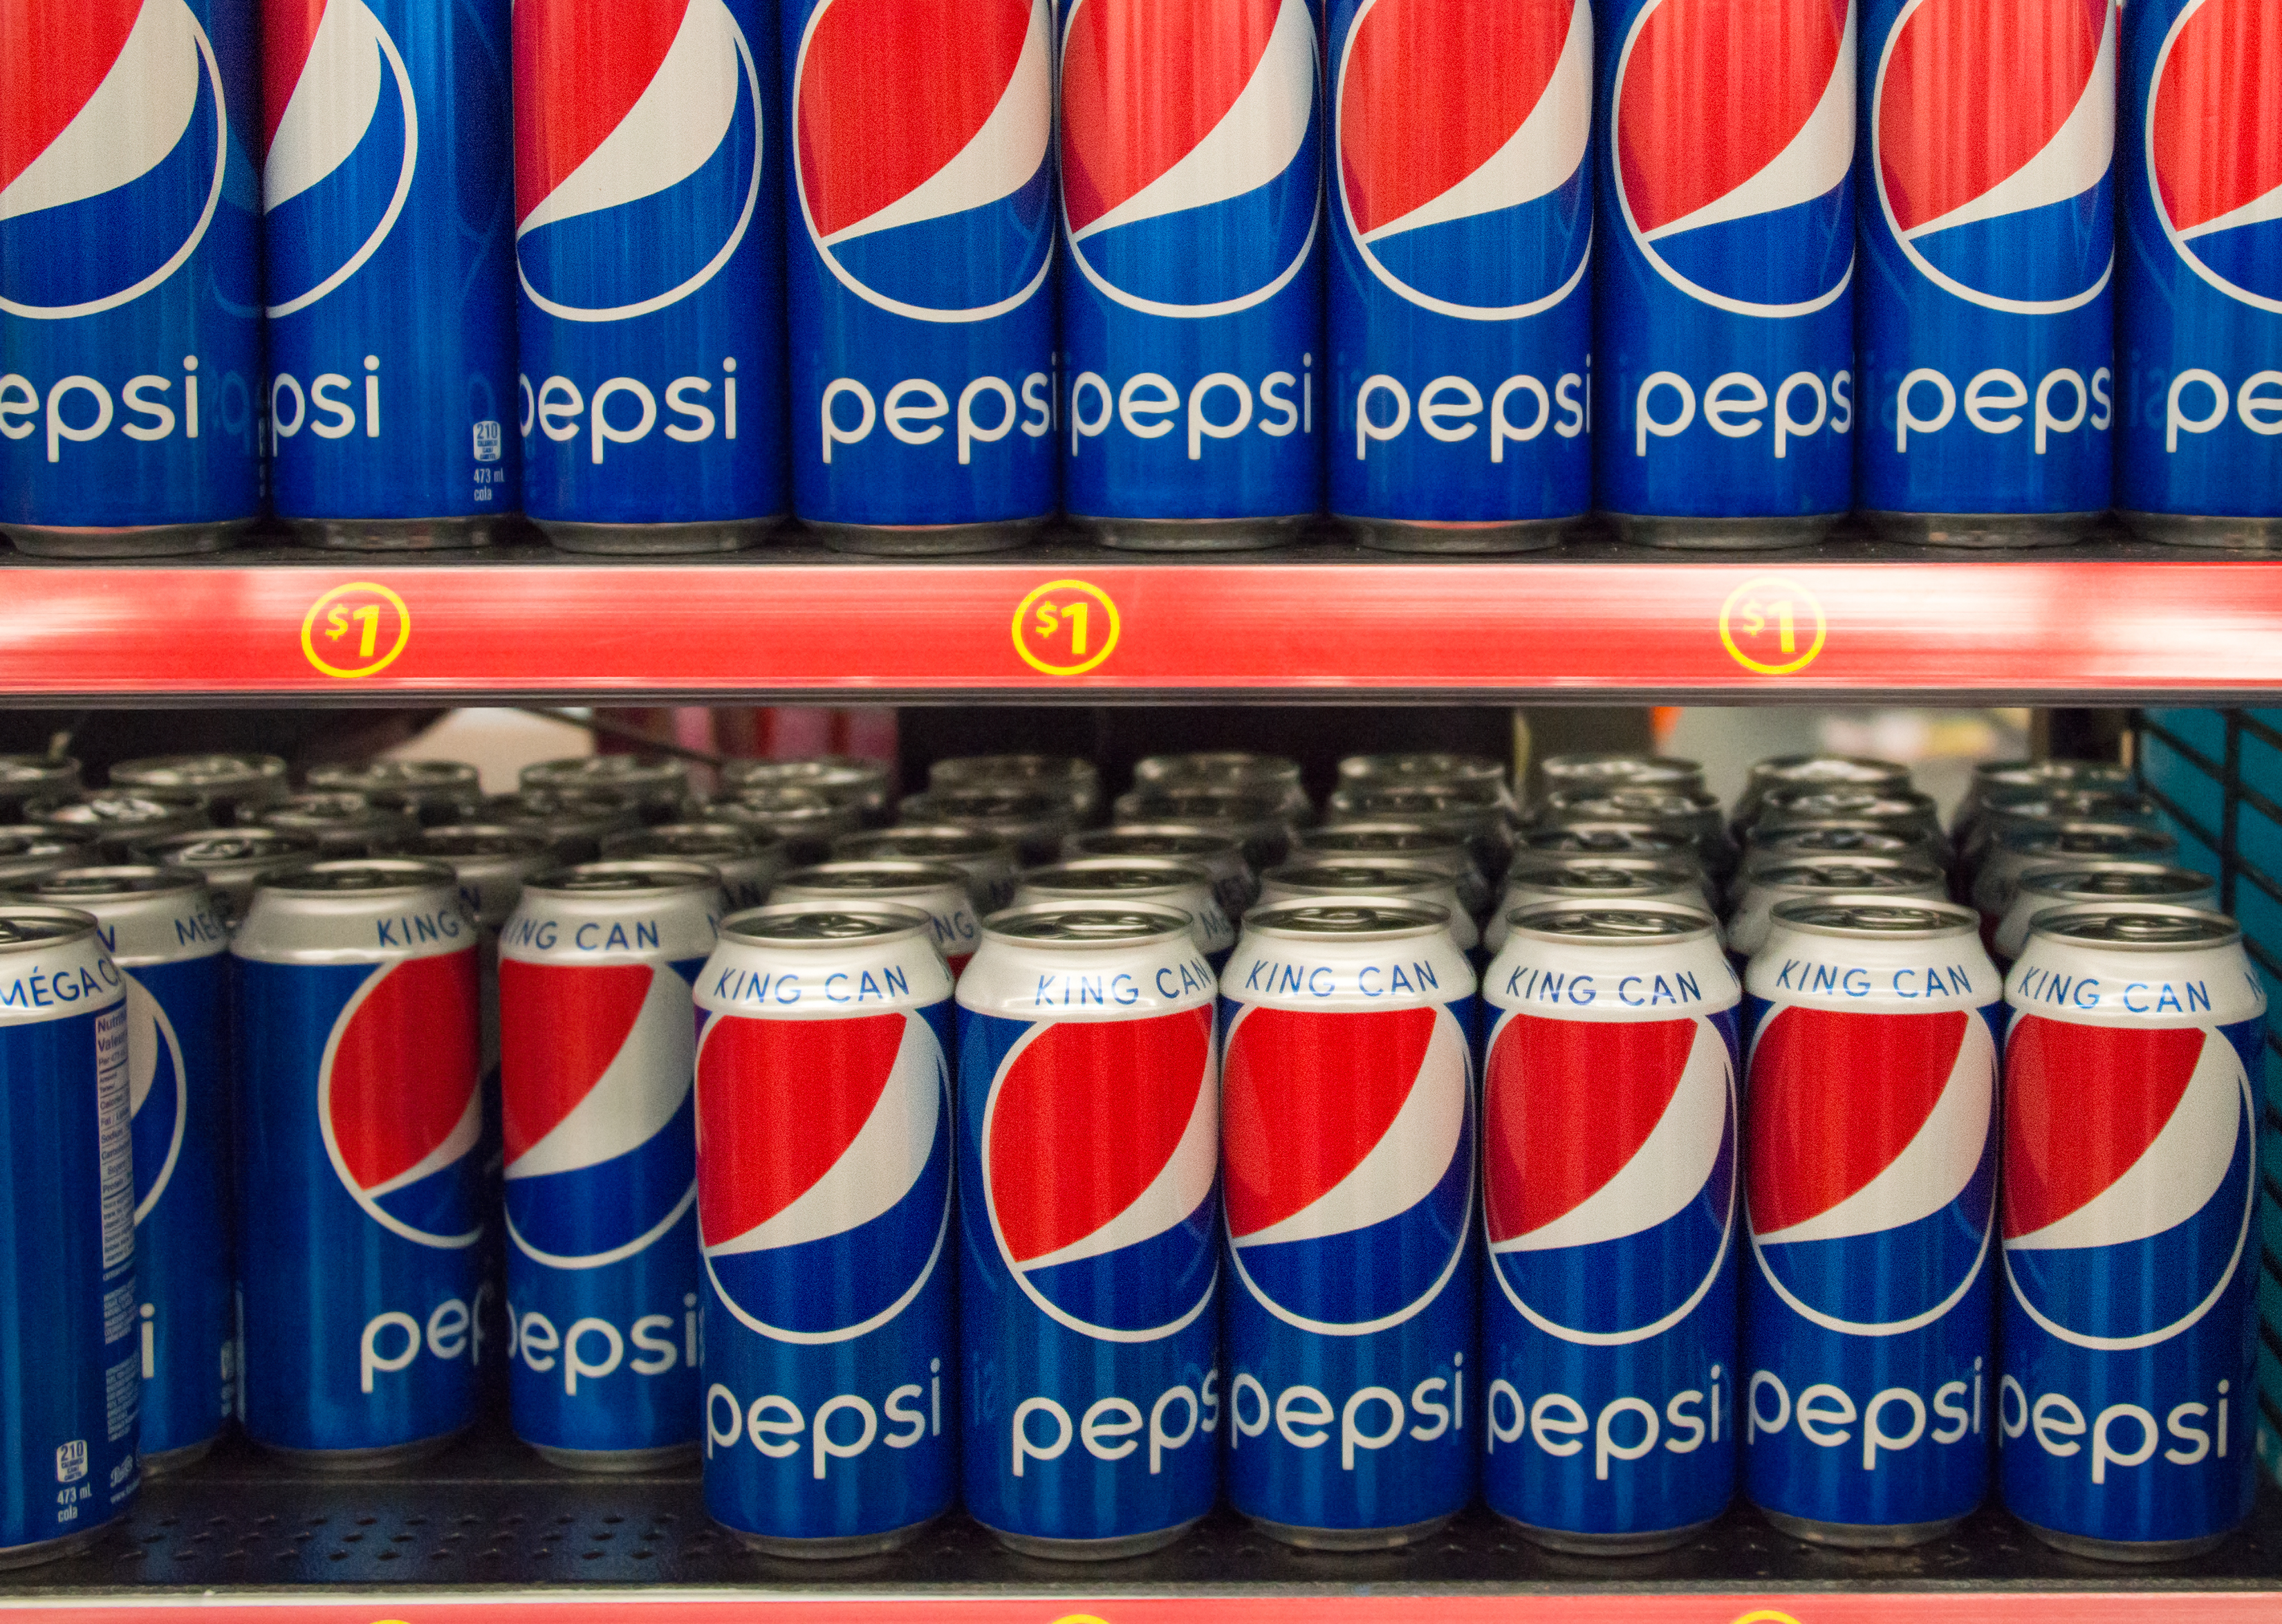 TORONTO, ONTARIO, CANADA - 2015/03/29: Pepsi Cola King Can on Store Shelf; Pepsi is a carbonated soft drink that is produced and manufactured by PepsiCo. and distributed all over the world. (Photo by Roberto Machado Noa/LightRocket via Getty Images)